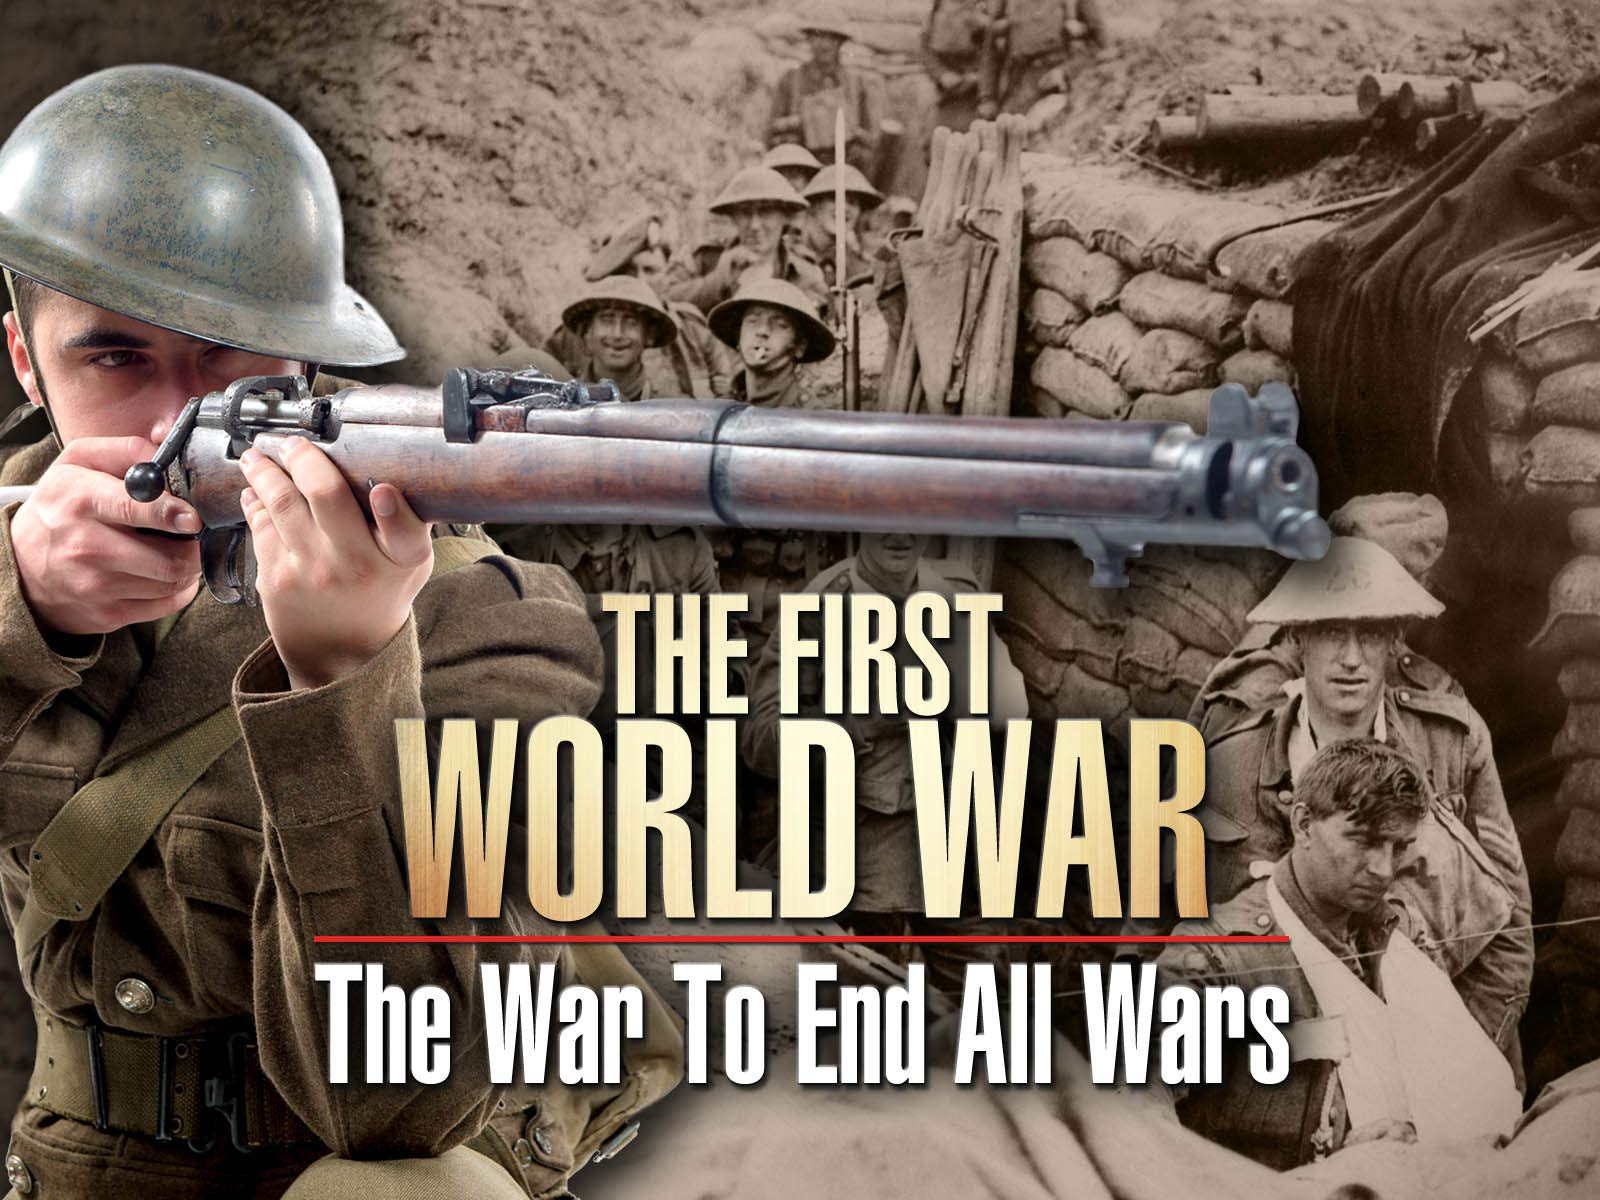 The First World War The War To End All Wars Patrick Allen Michael Campbell Andrew Aitken Alexandra Aikman Donald Mcphail Paul Hembury Terry Shand Dave Mcwhinnie Dave Flitton Amazon Co Uk Welcome